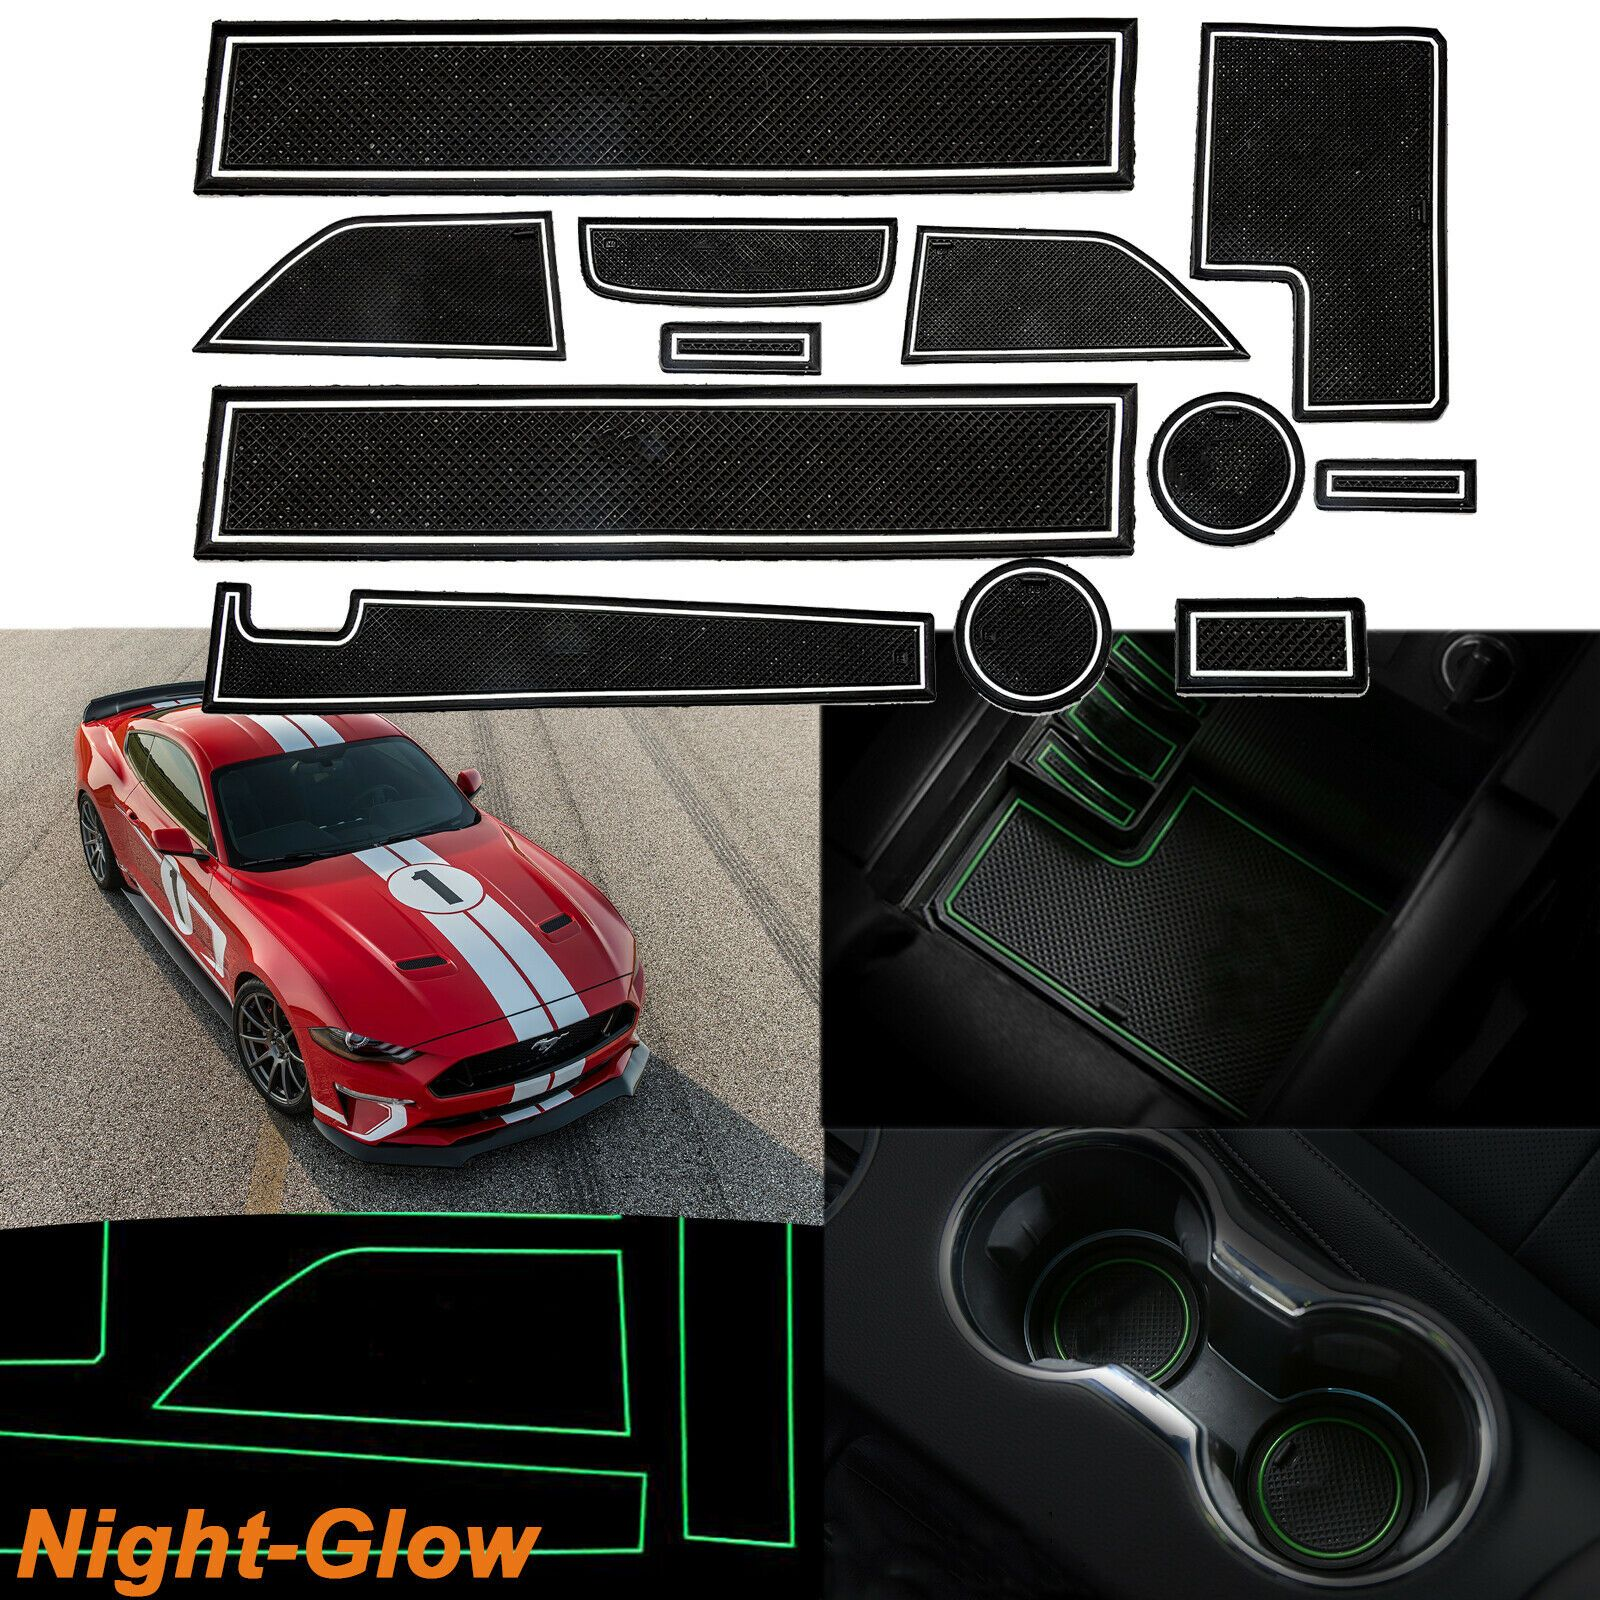 Xotic Tech 12pcs Non-Slip Coaster Cup Holder Door Storage Pad for Ford Mustang 2015-2019 Car Full Interior Night-Glow Anti-dust Mat